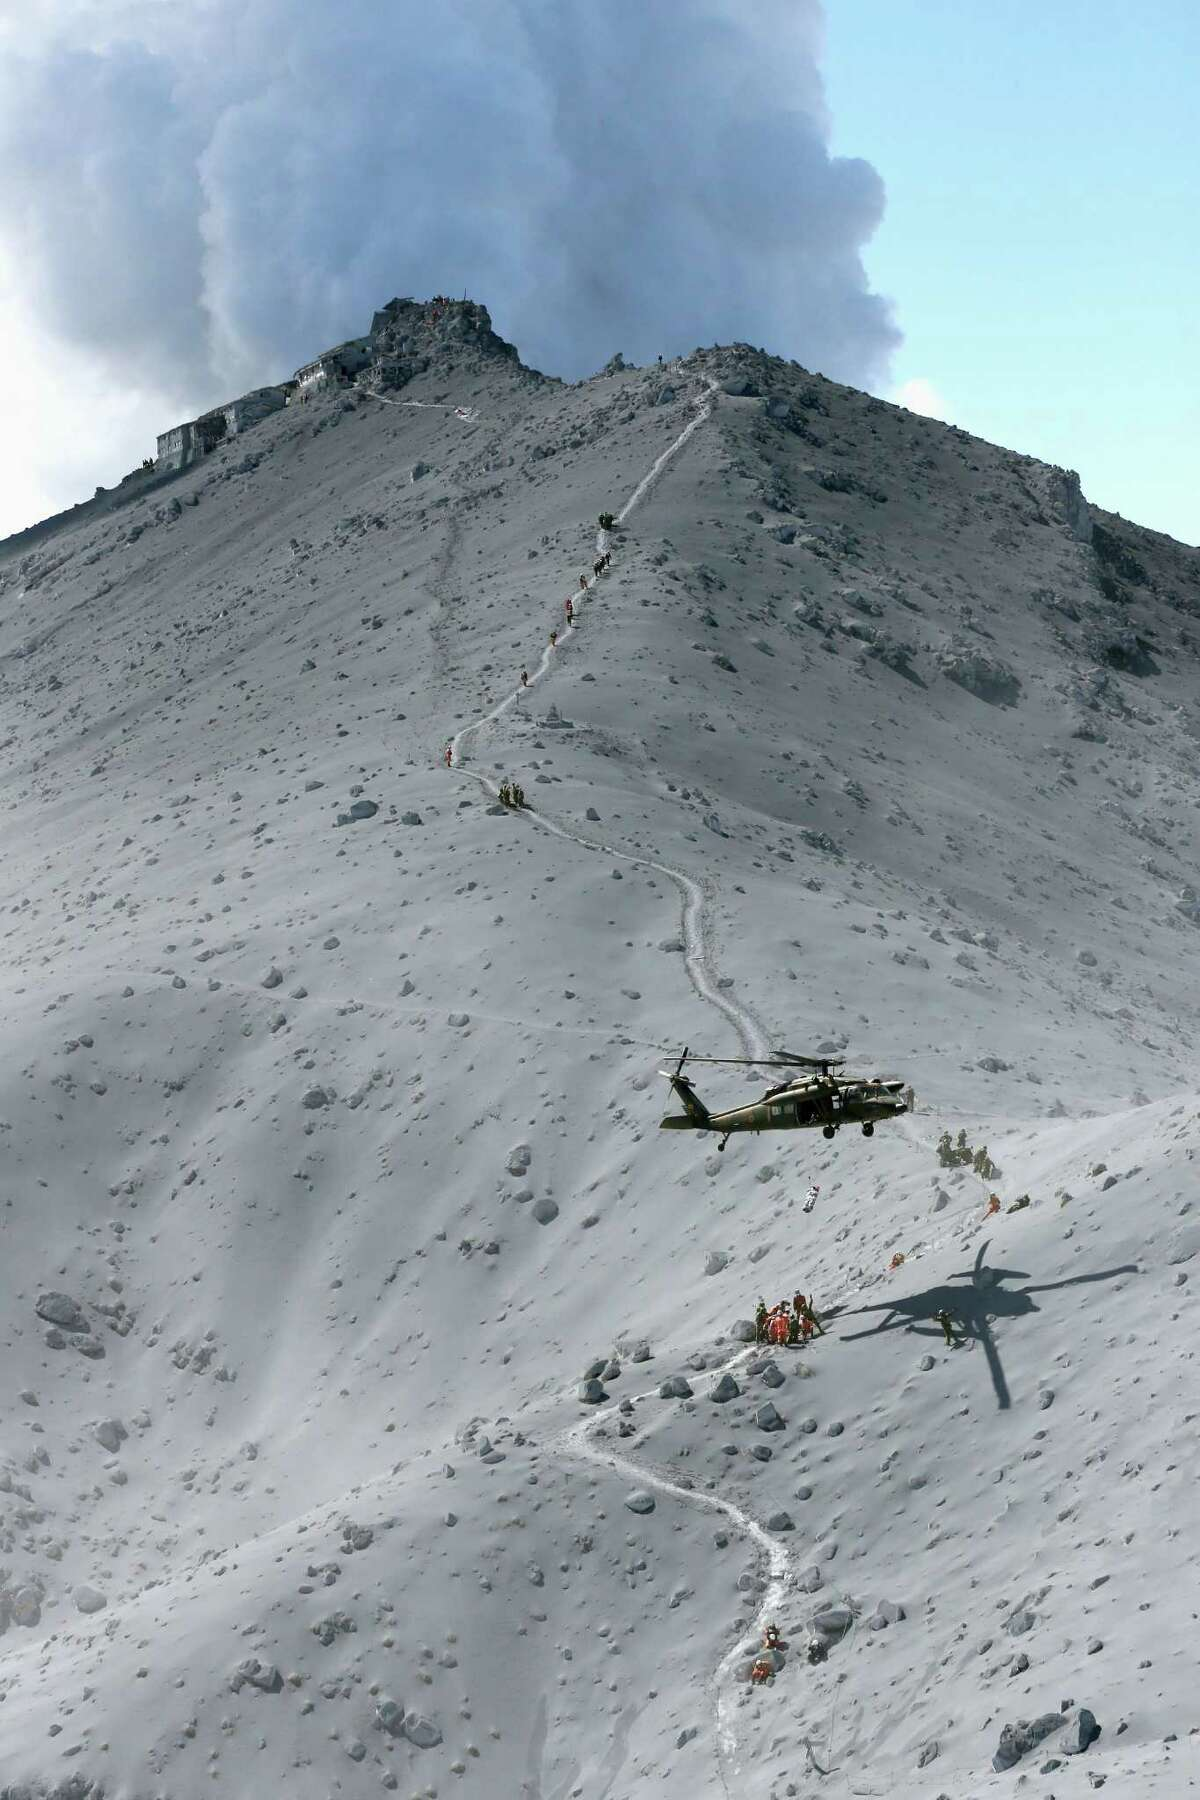 Firefighters and members of Japan's Self-Defense Forces conduct a rescue operation near the peak of Mount Ontake as plumes of smoke billow in central Japan, Sunday, Sept. 28, 2014. Mount Ontake erupted shortly before noon Saturday, spewing large white plumes of gas and ash high into the sky and blanketing the surrounding area in ash. Rescue workers on Sunday found more than 30 people unconscious and believed to be dead near the peak of an erupting volcano, a Japanese police official said. JAPAN OUT, MANDATORY CREDIT